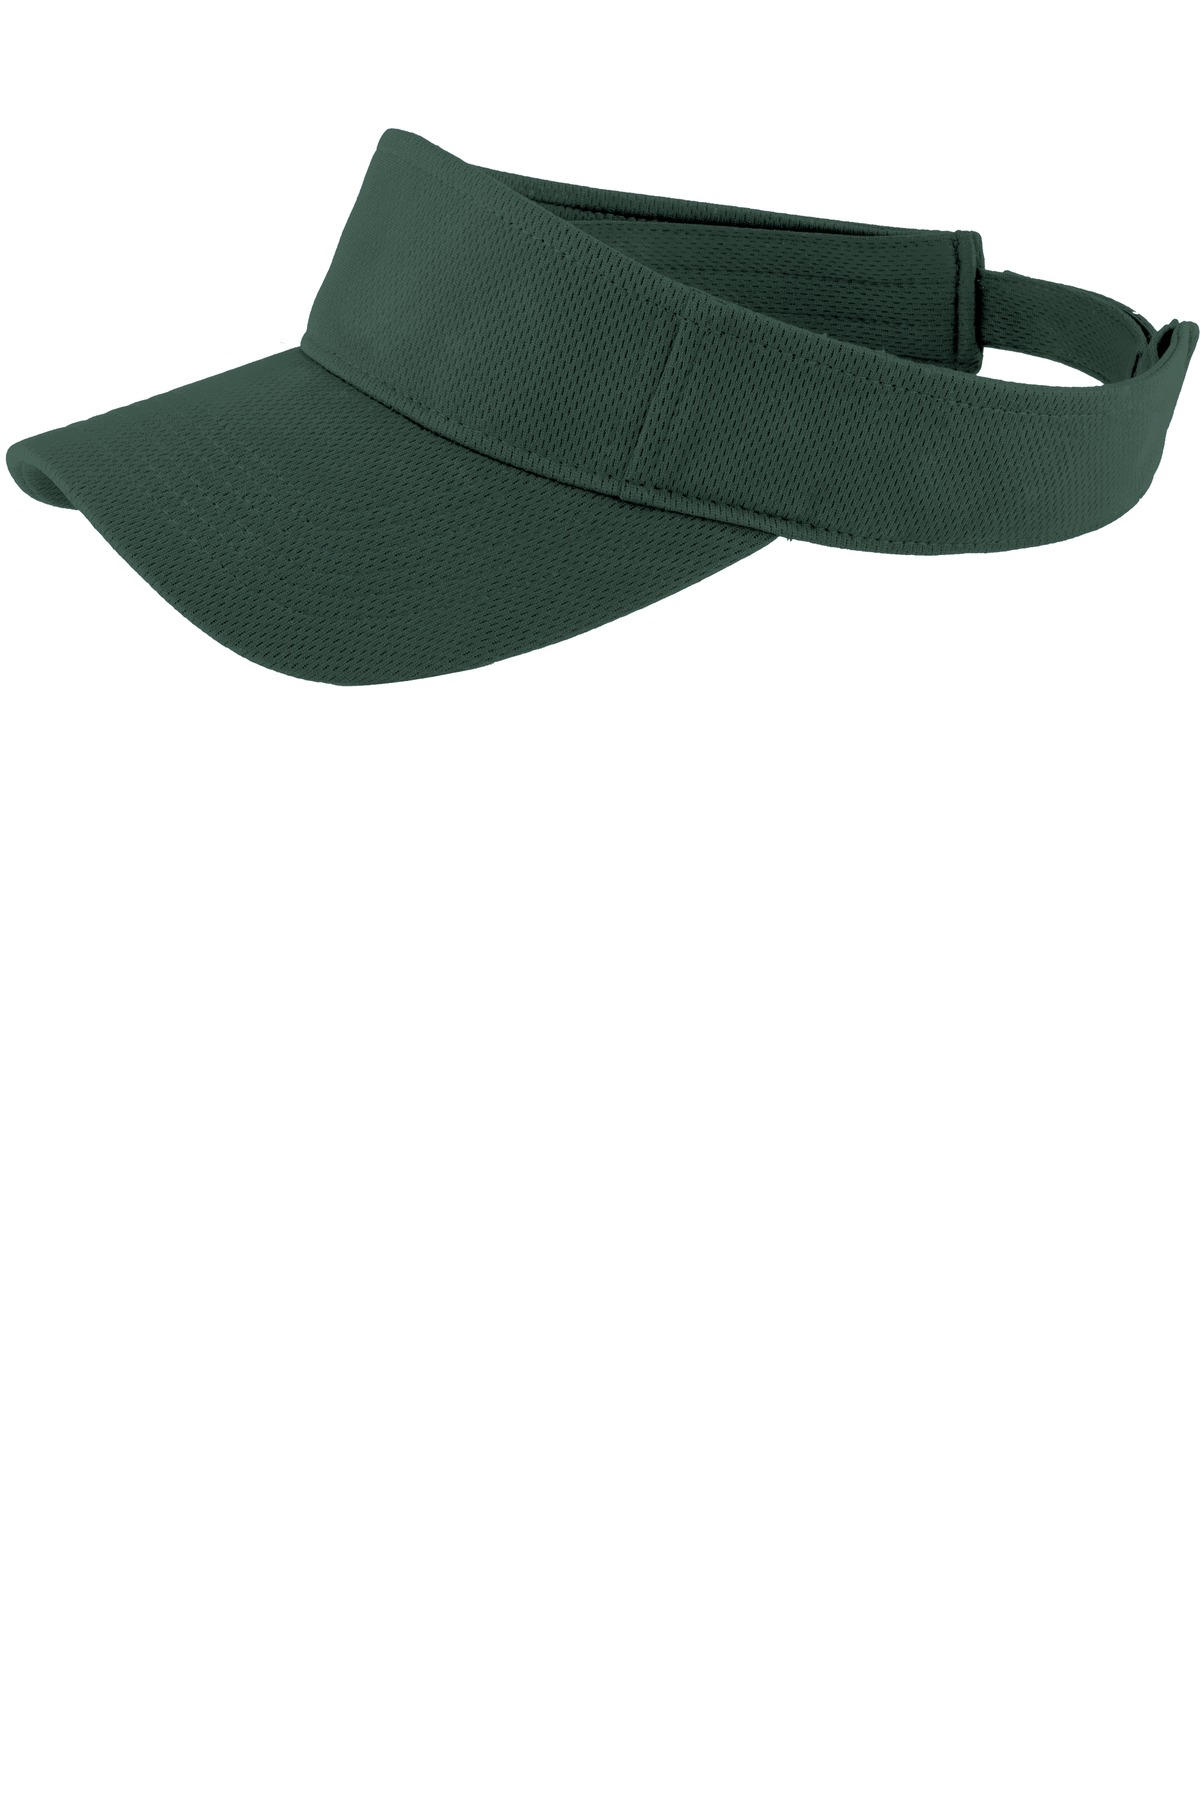 Sport-Tek ®  PosiCharge ®  RacerMesh ®  Visor.  STC27 - Dark Forest Green